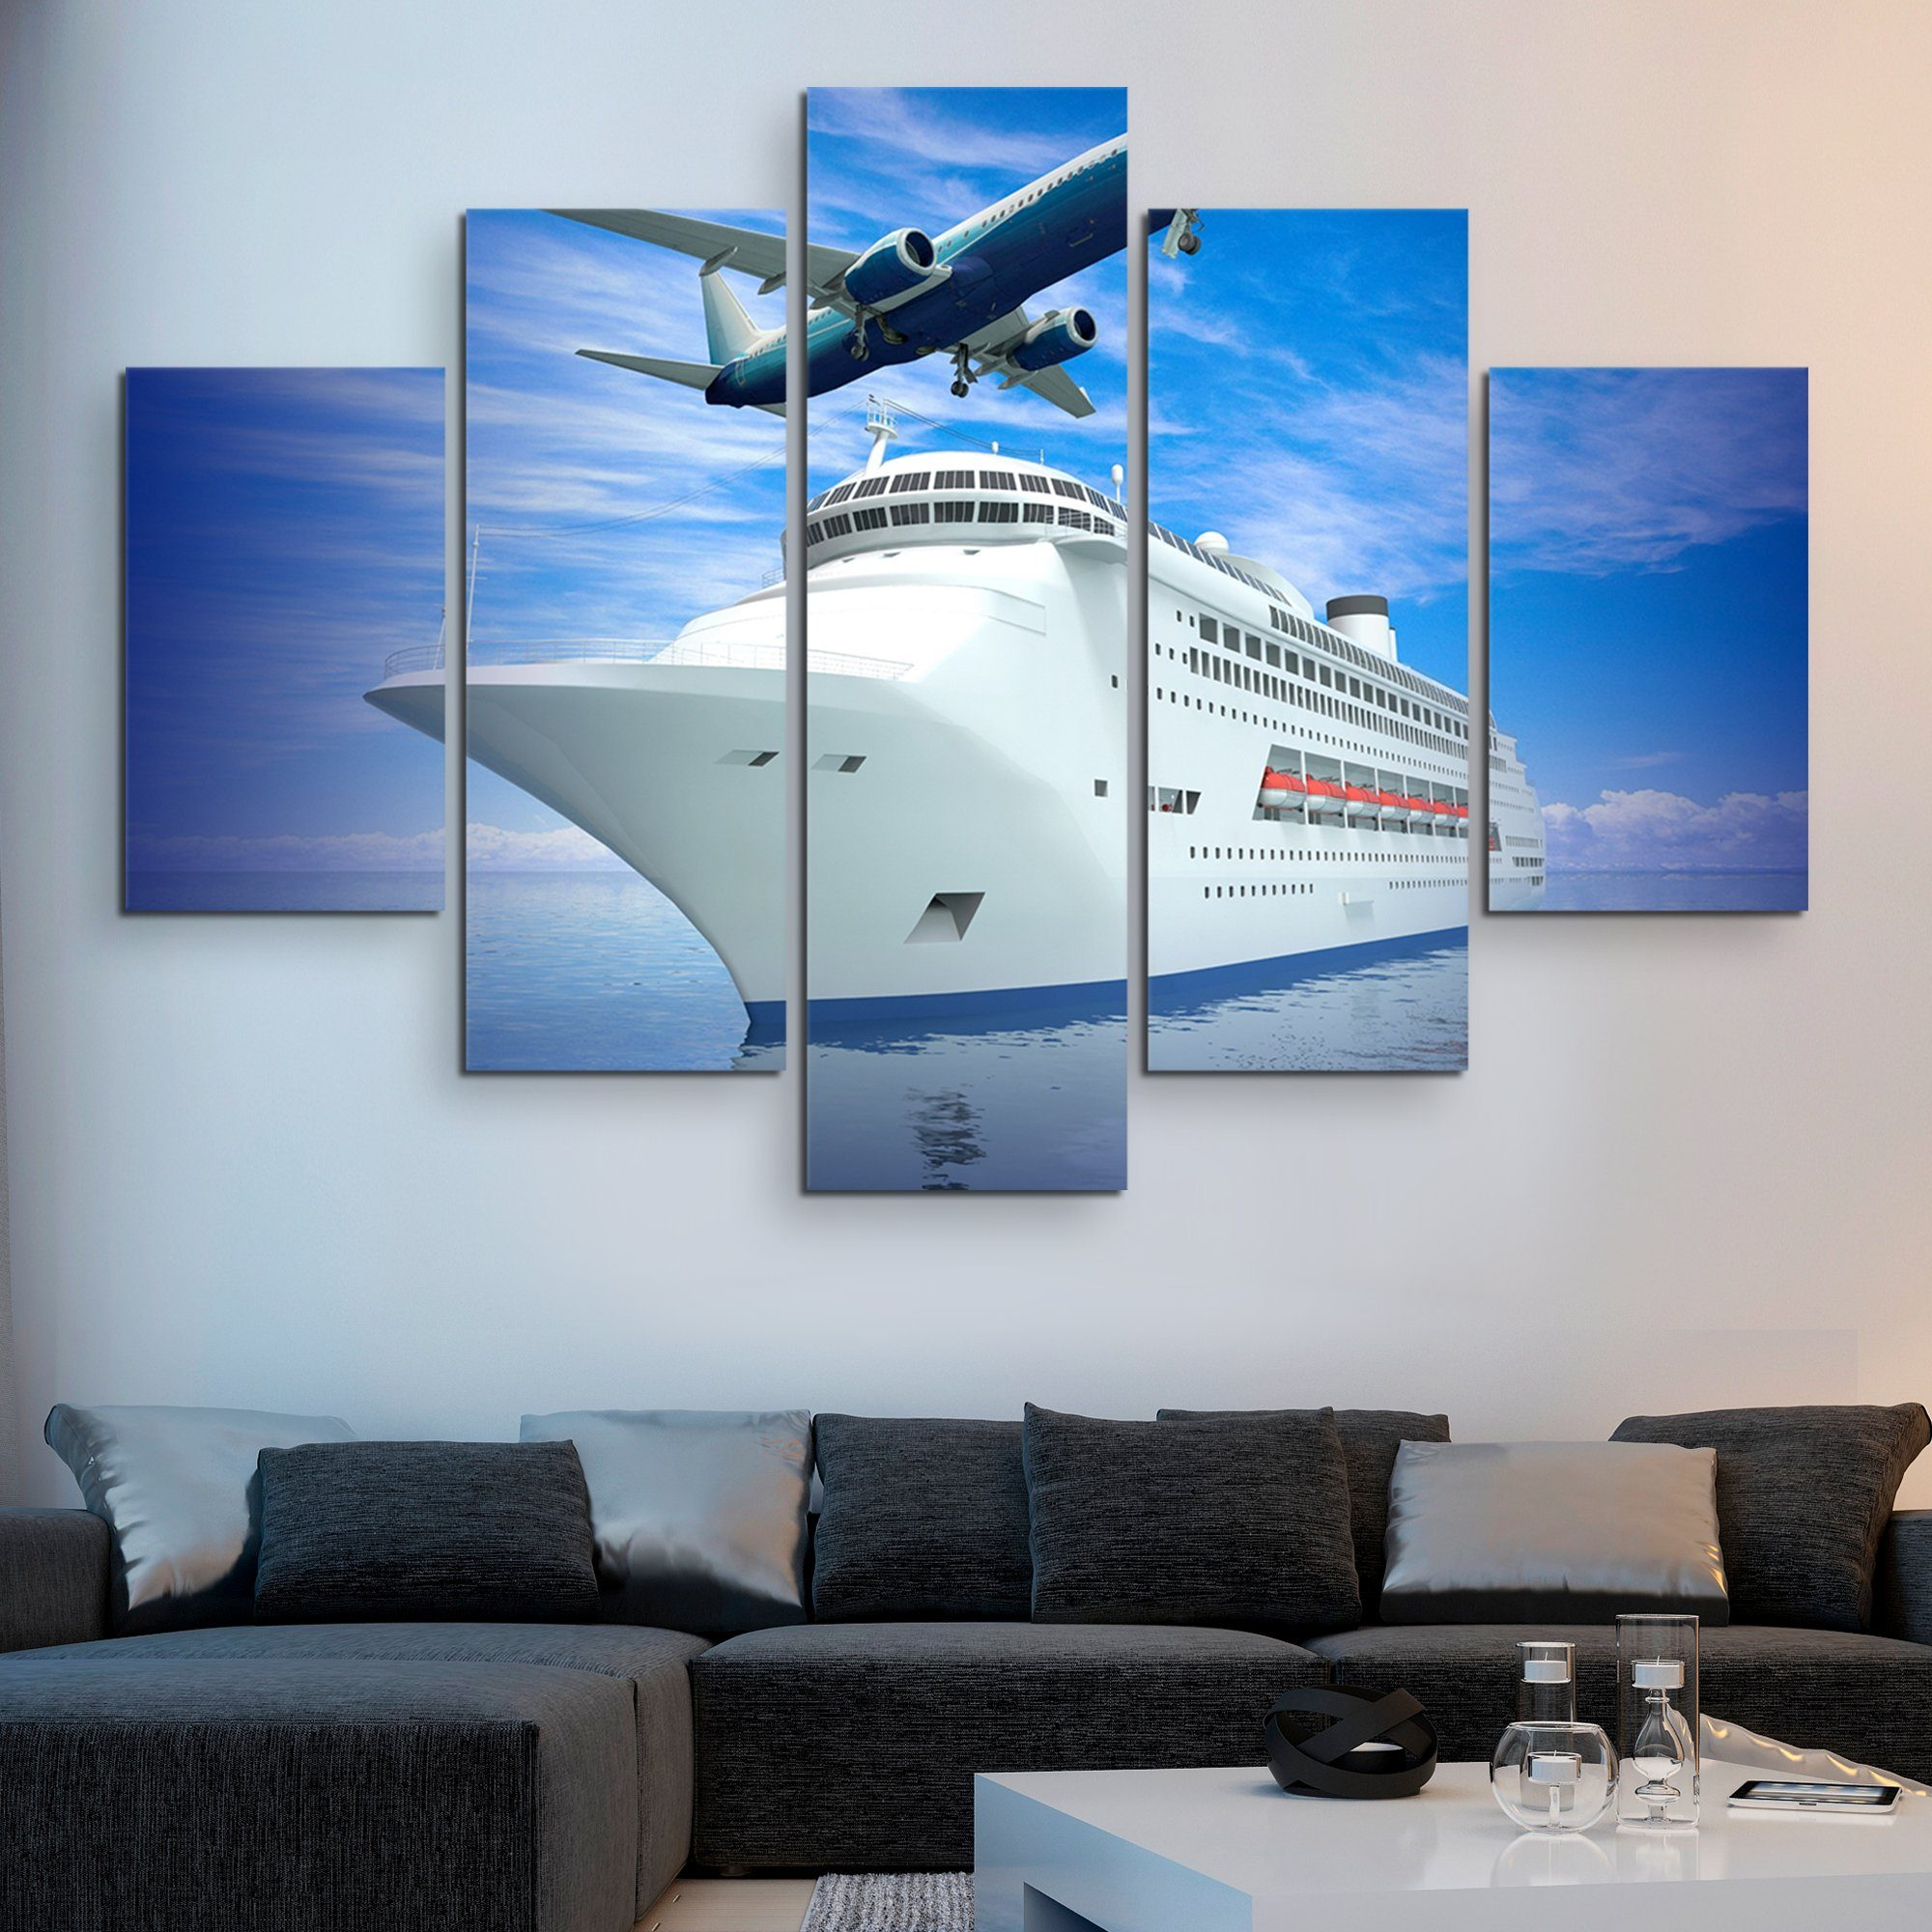 5 piece Luxury Transportation wall art